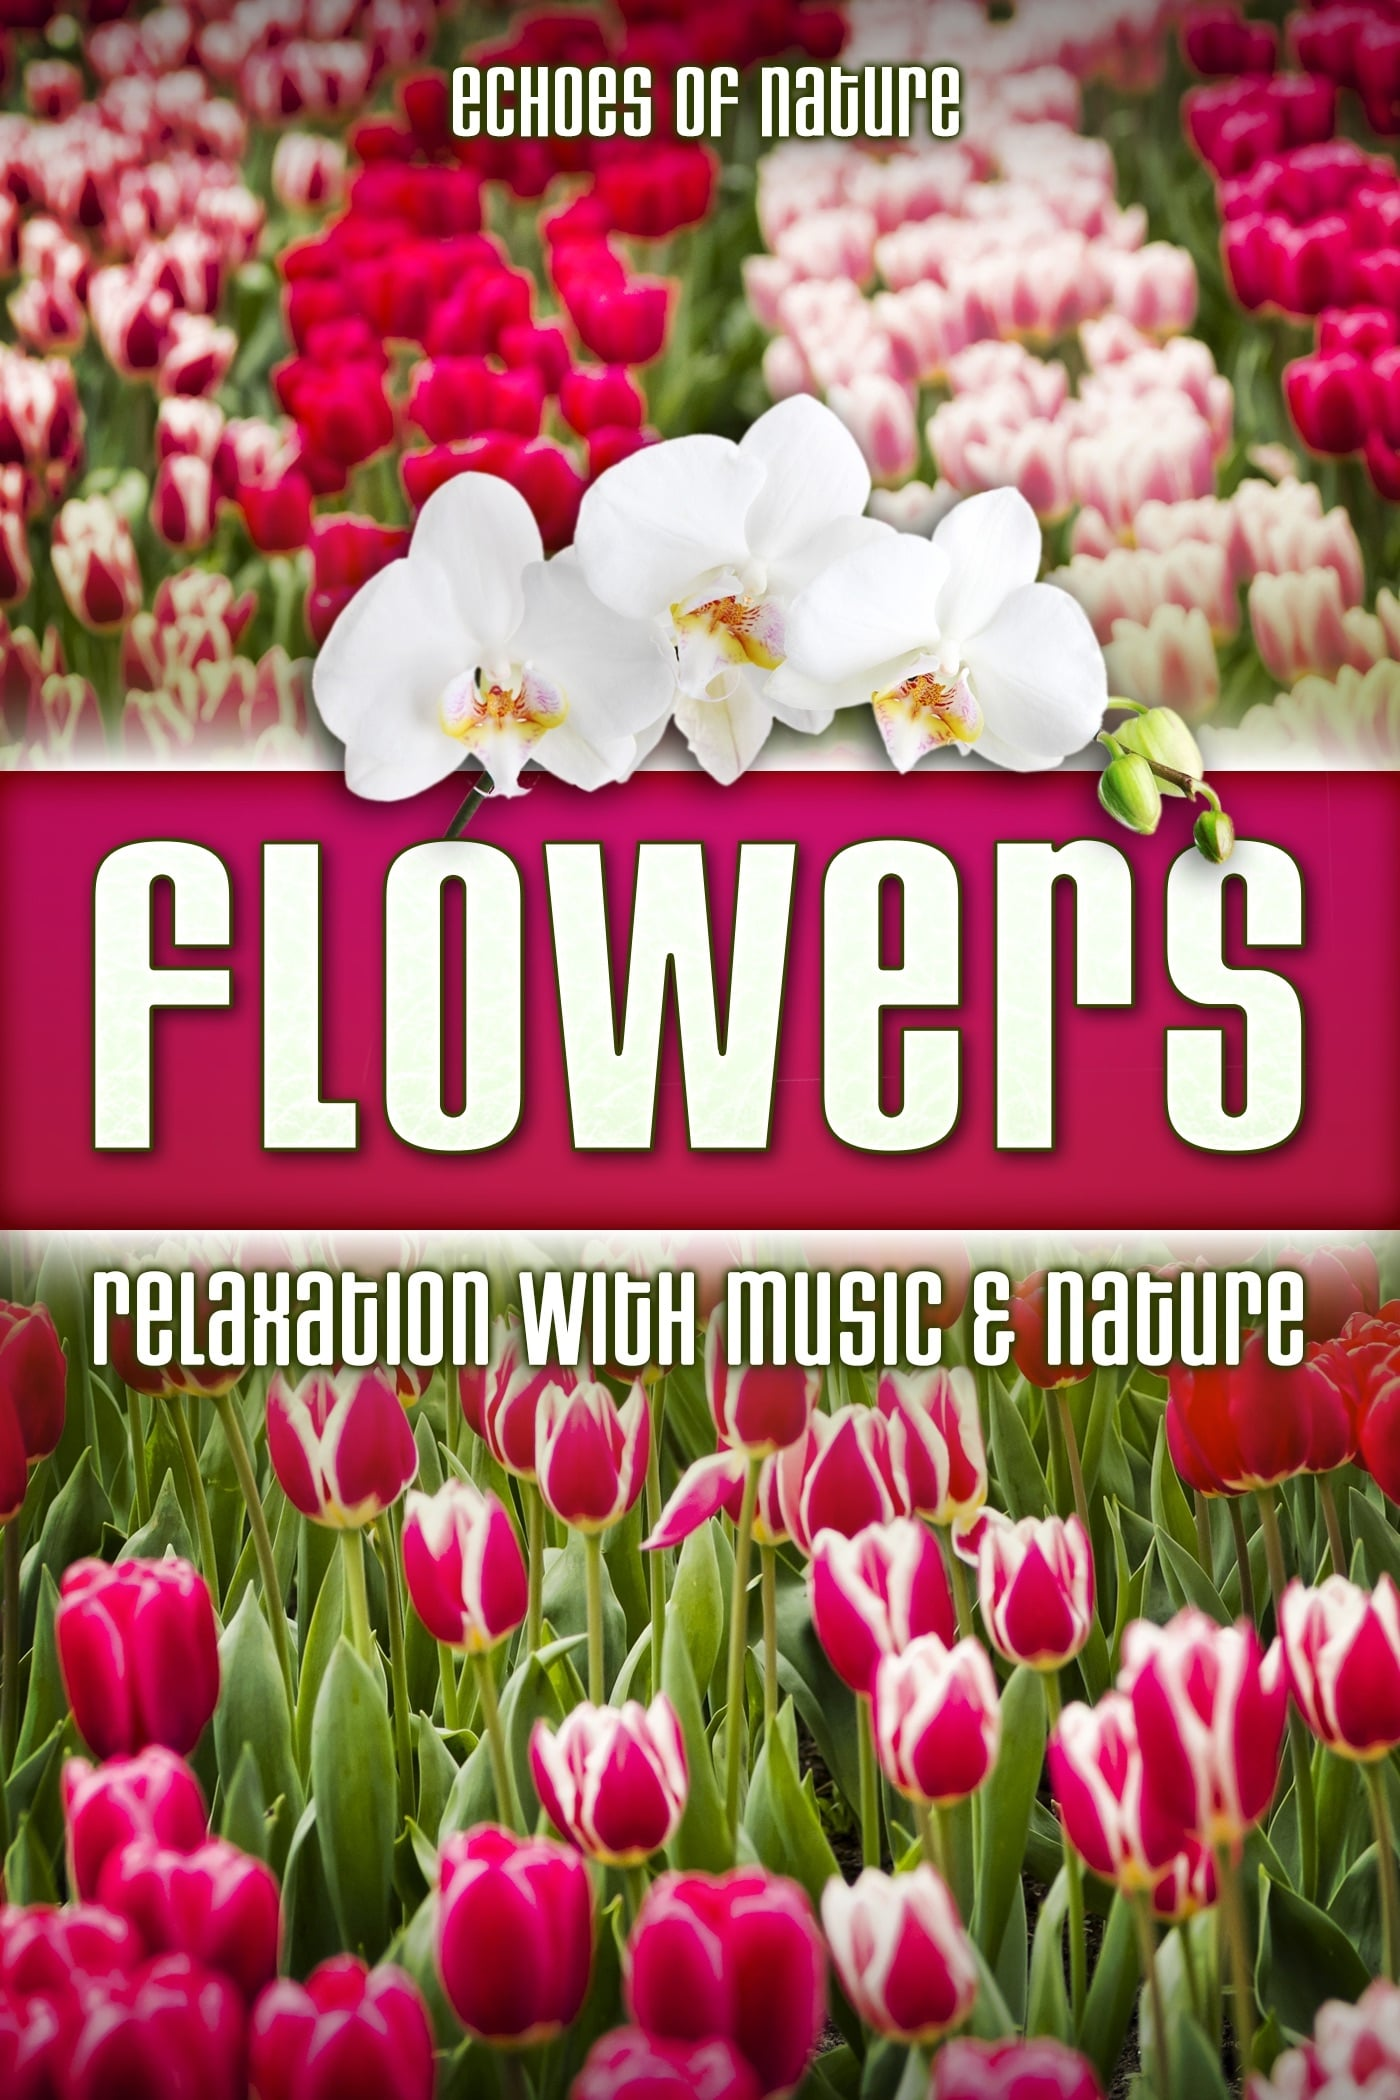 Flowers: Echoes of Nature Relaxation with Music & Nature on FREECABLE TV